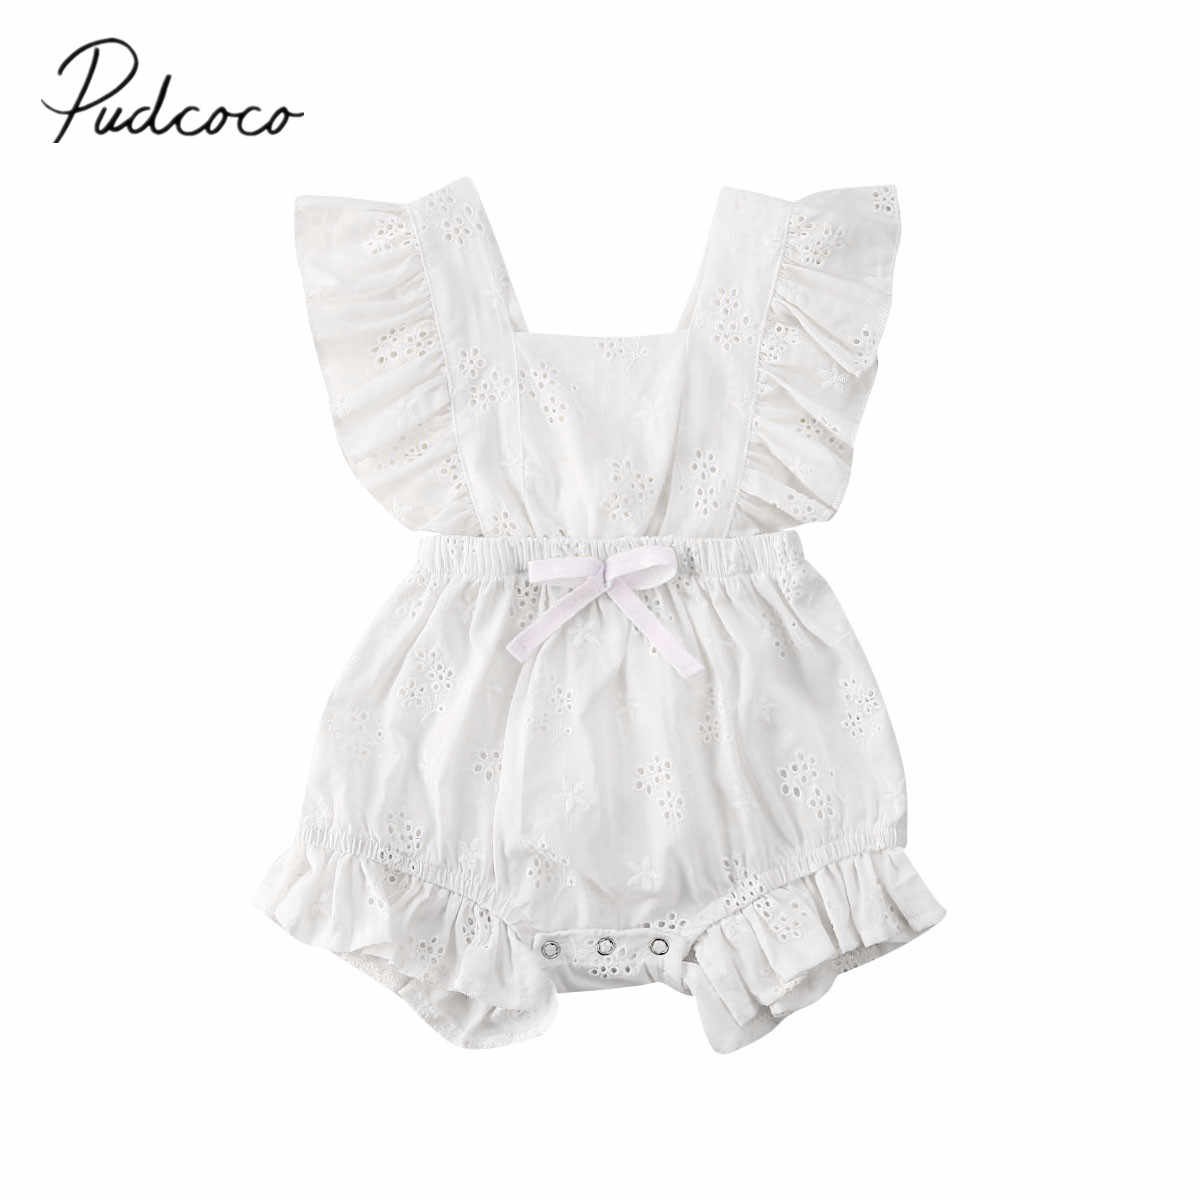 2020 Baby Summer Clothing Infant Newbonr Baby Girl Romper Ruffled Hollow Out Breathable Jumpsuits Sleeveless Solid White Sunsuit